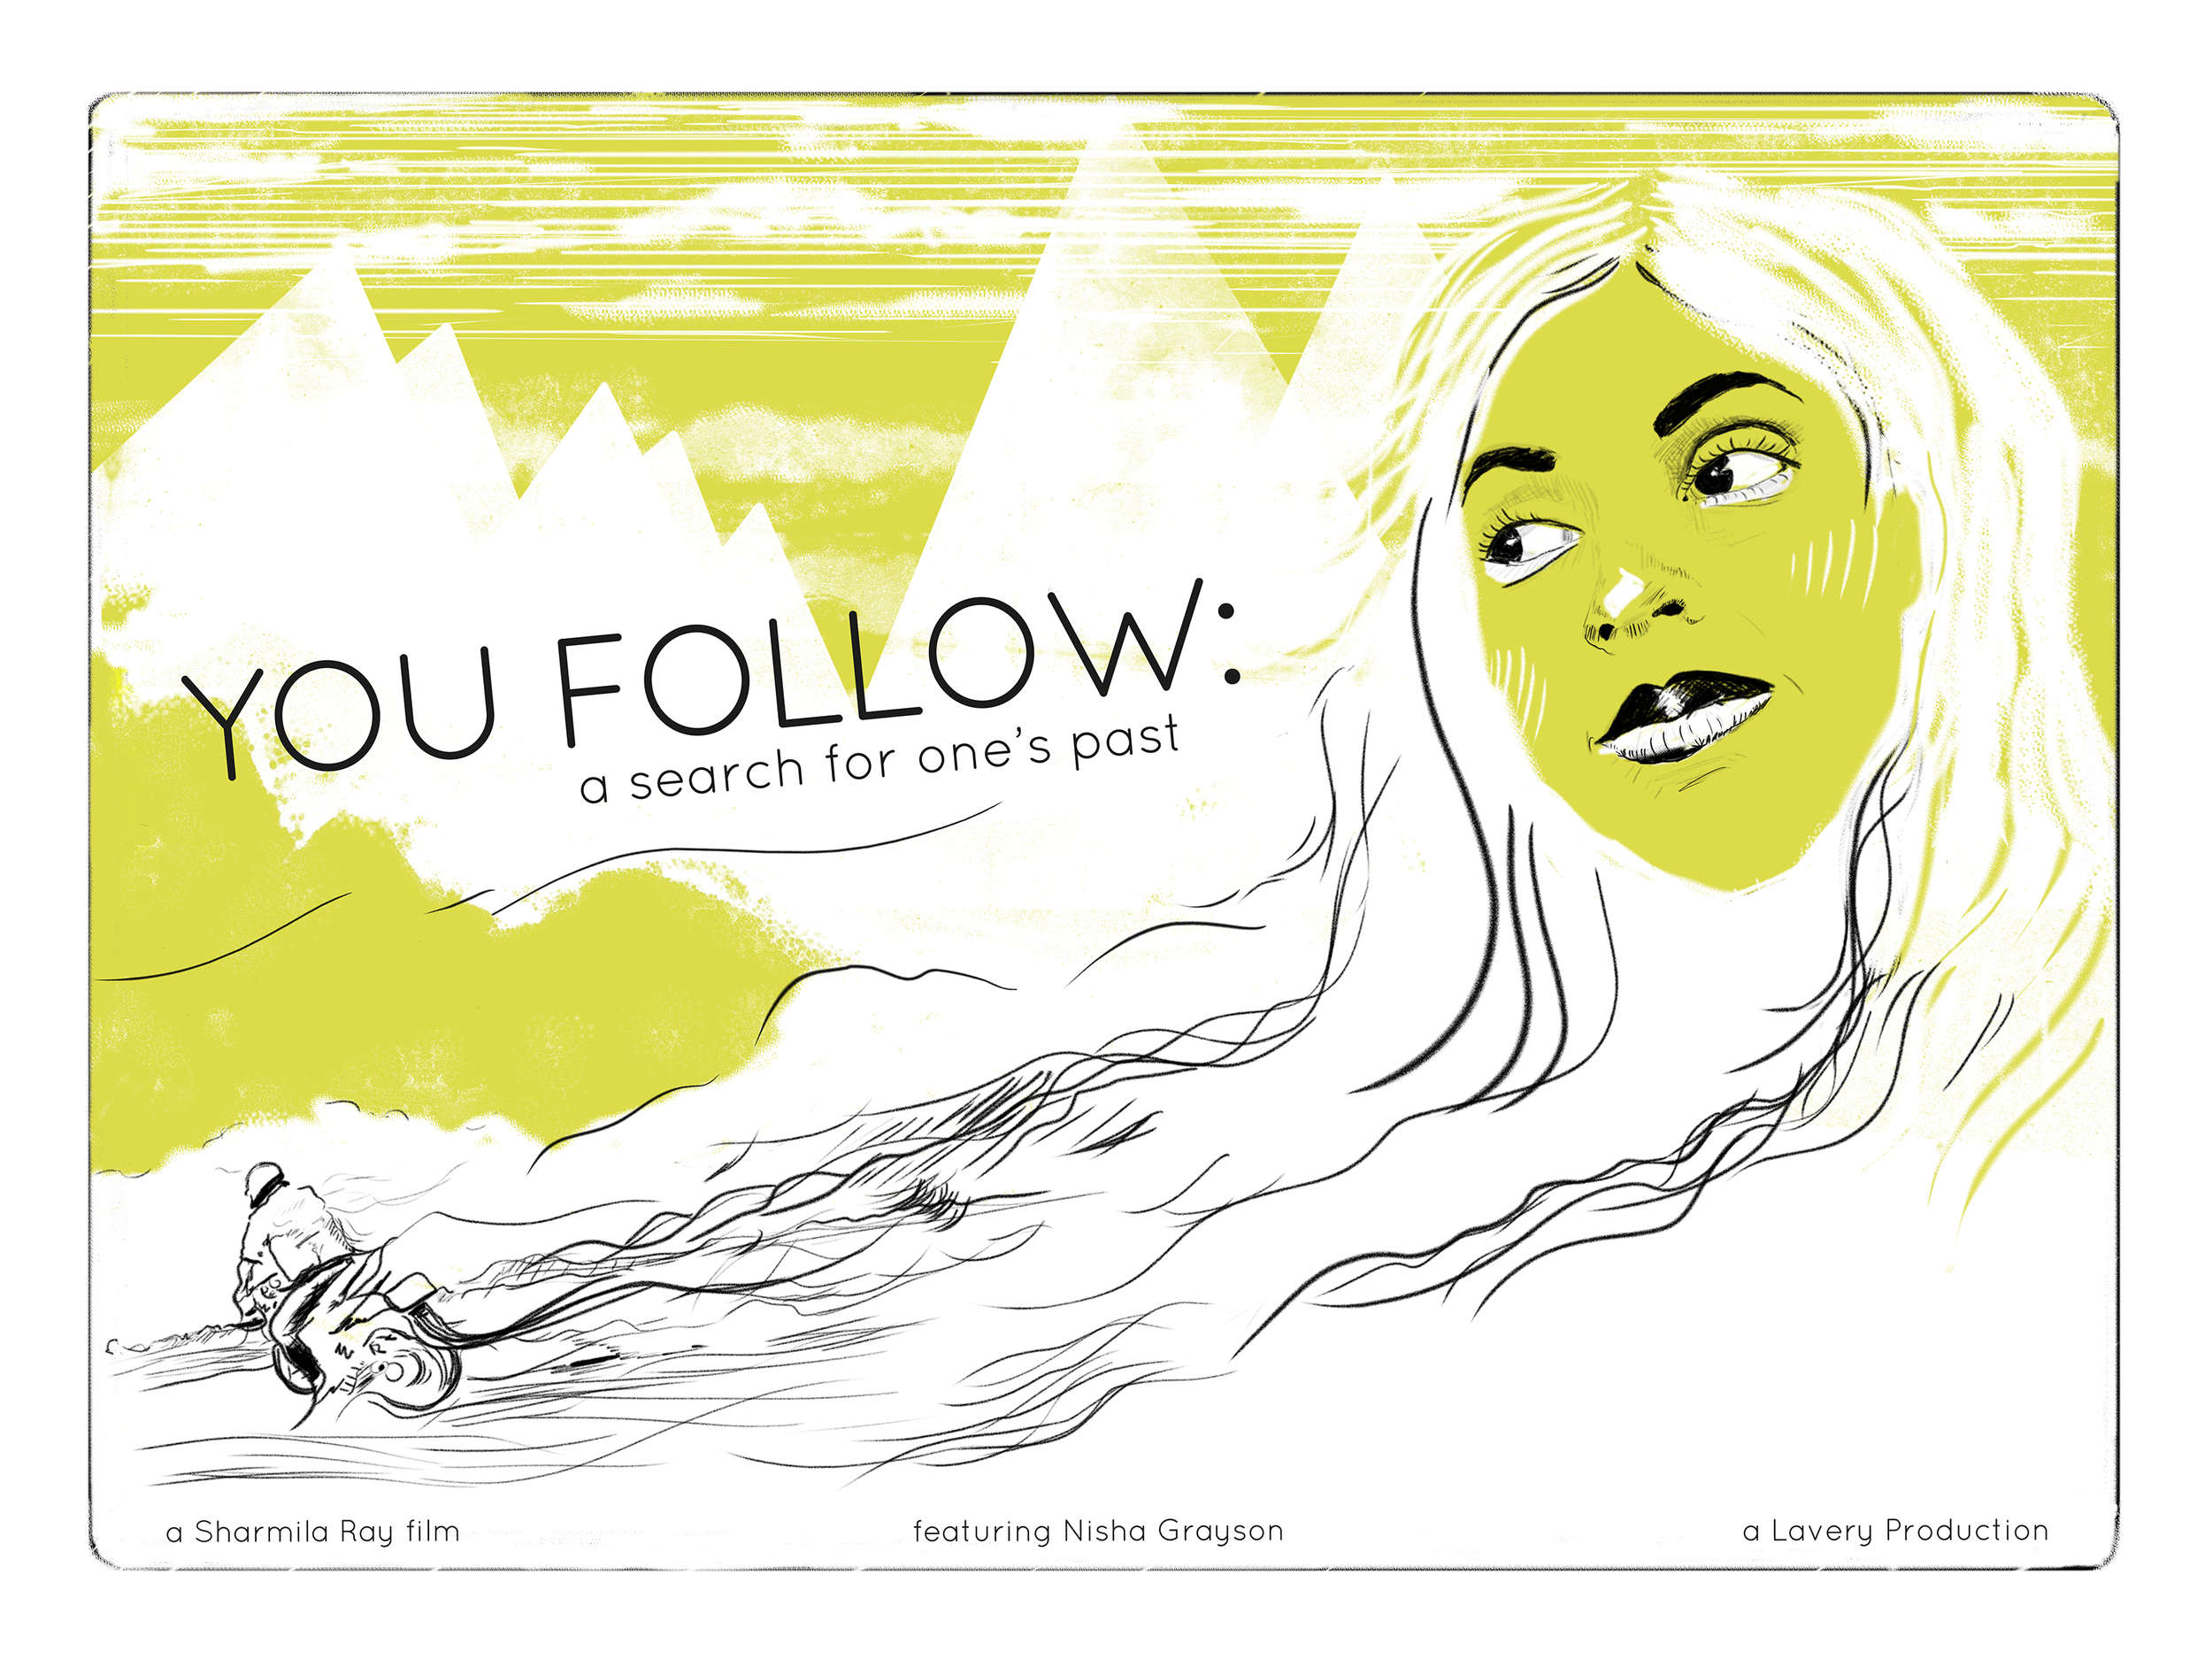 POSTER_YouFollow_Final_Texted-2.png